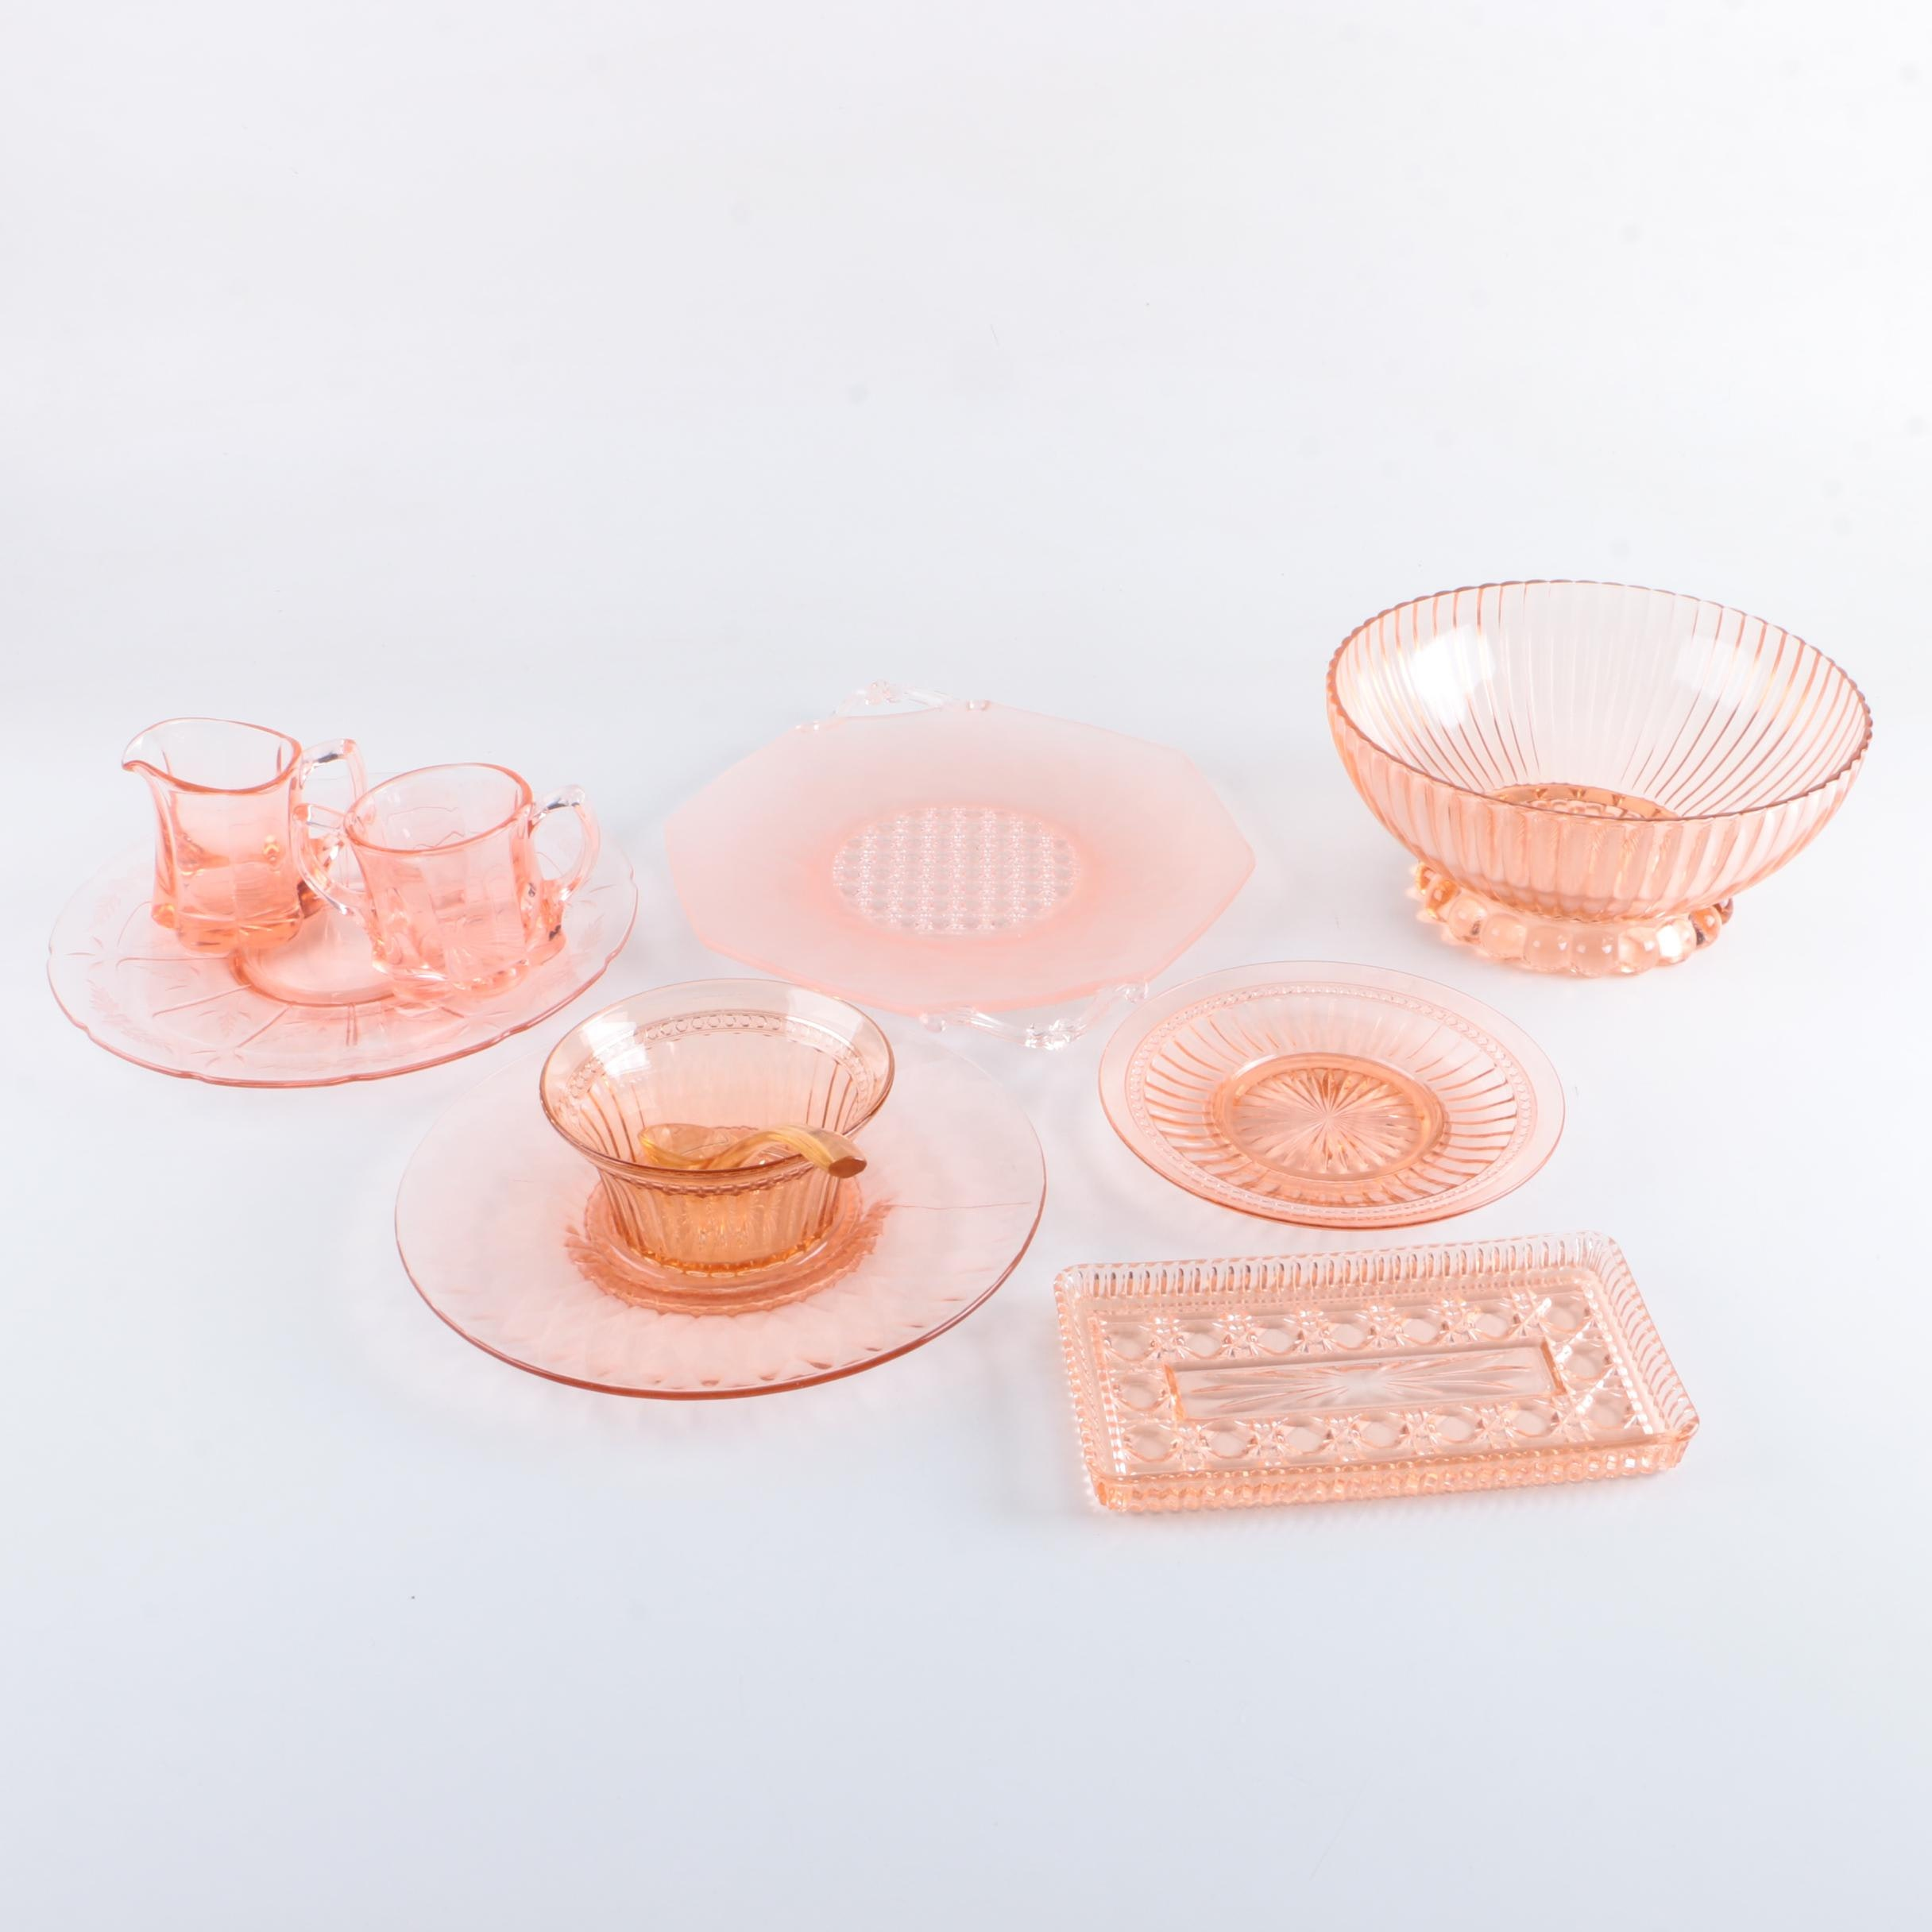 Pink Glass Serving Trays, Bowls, and Creamer with Sugar